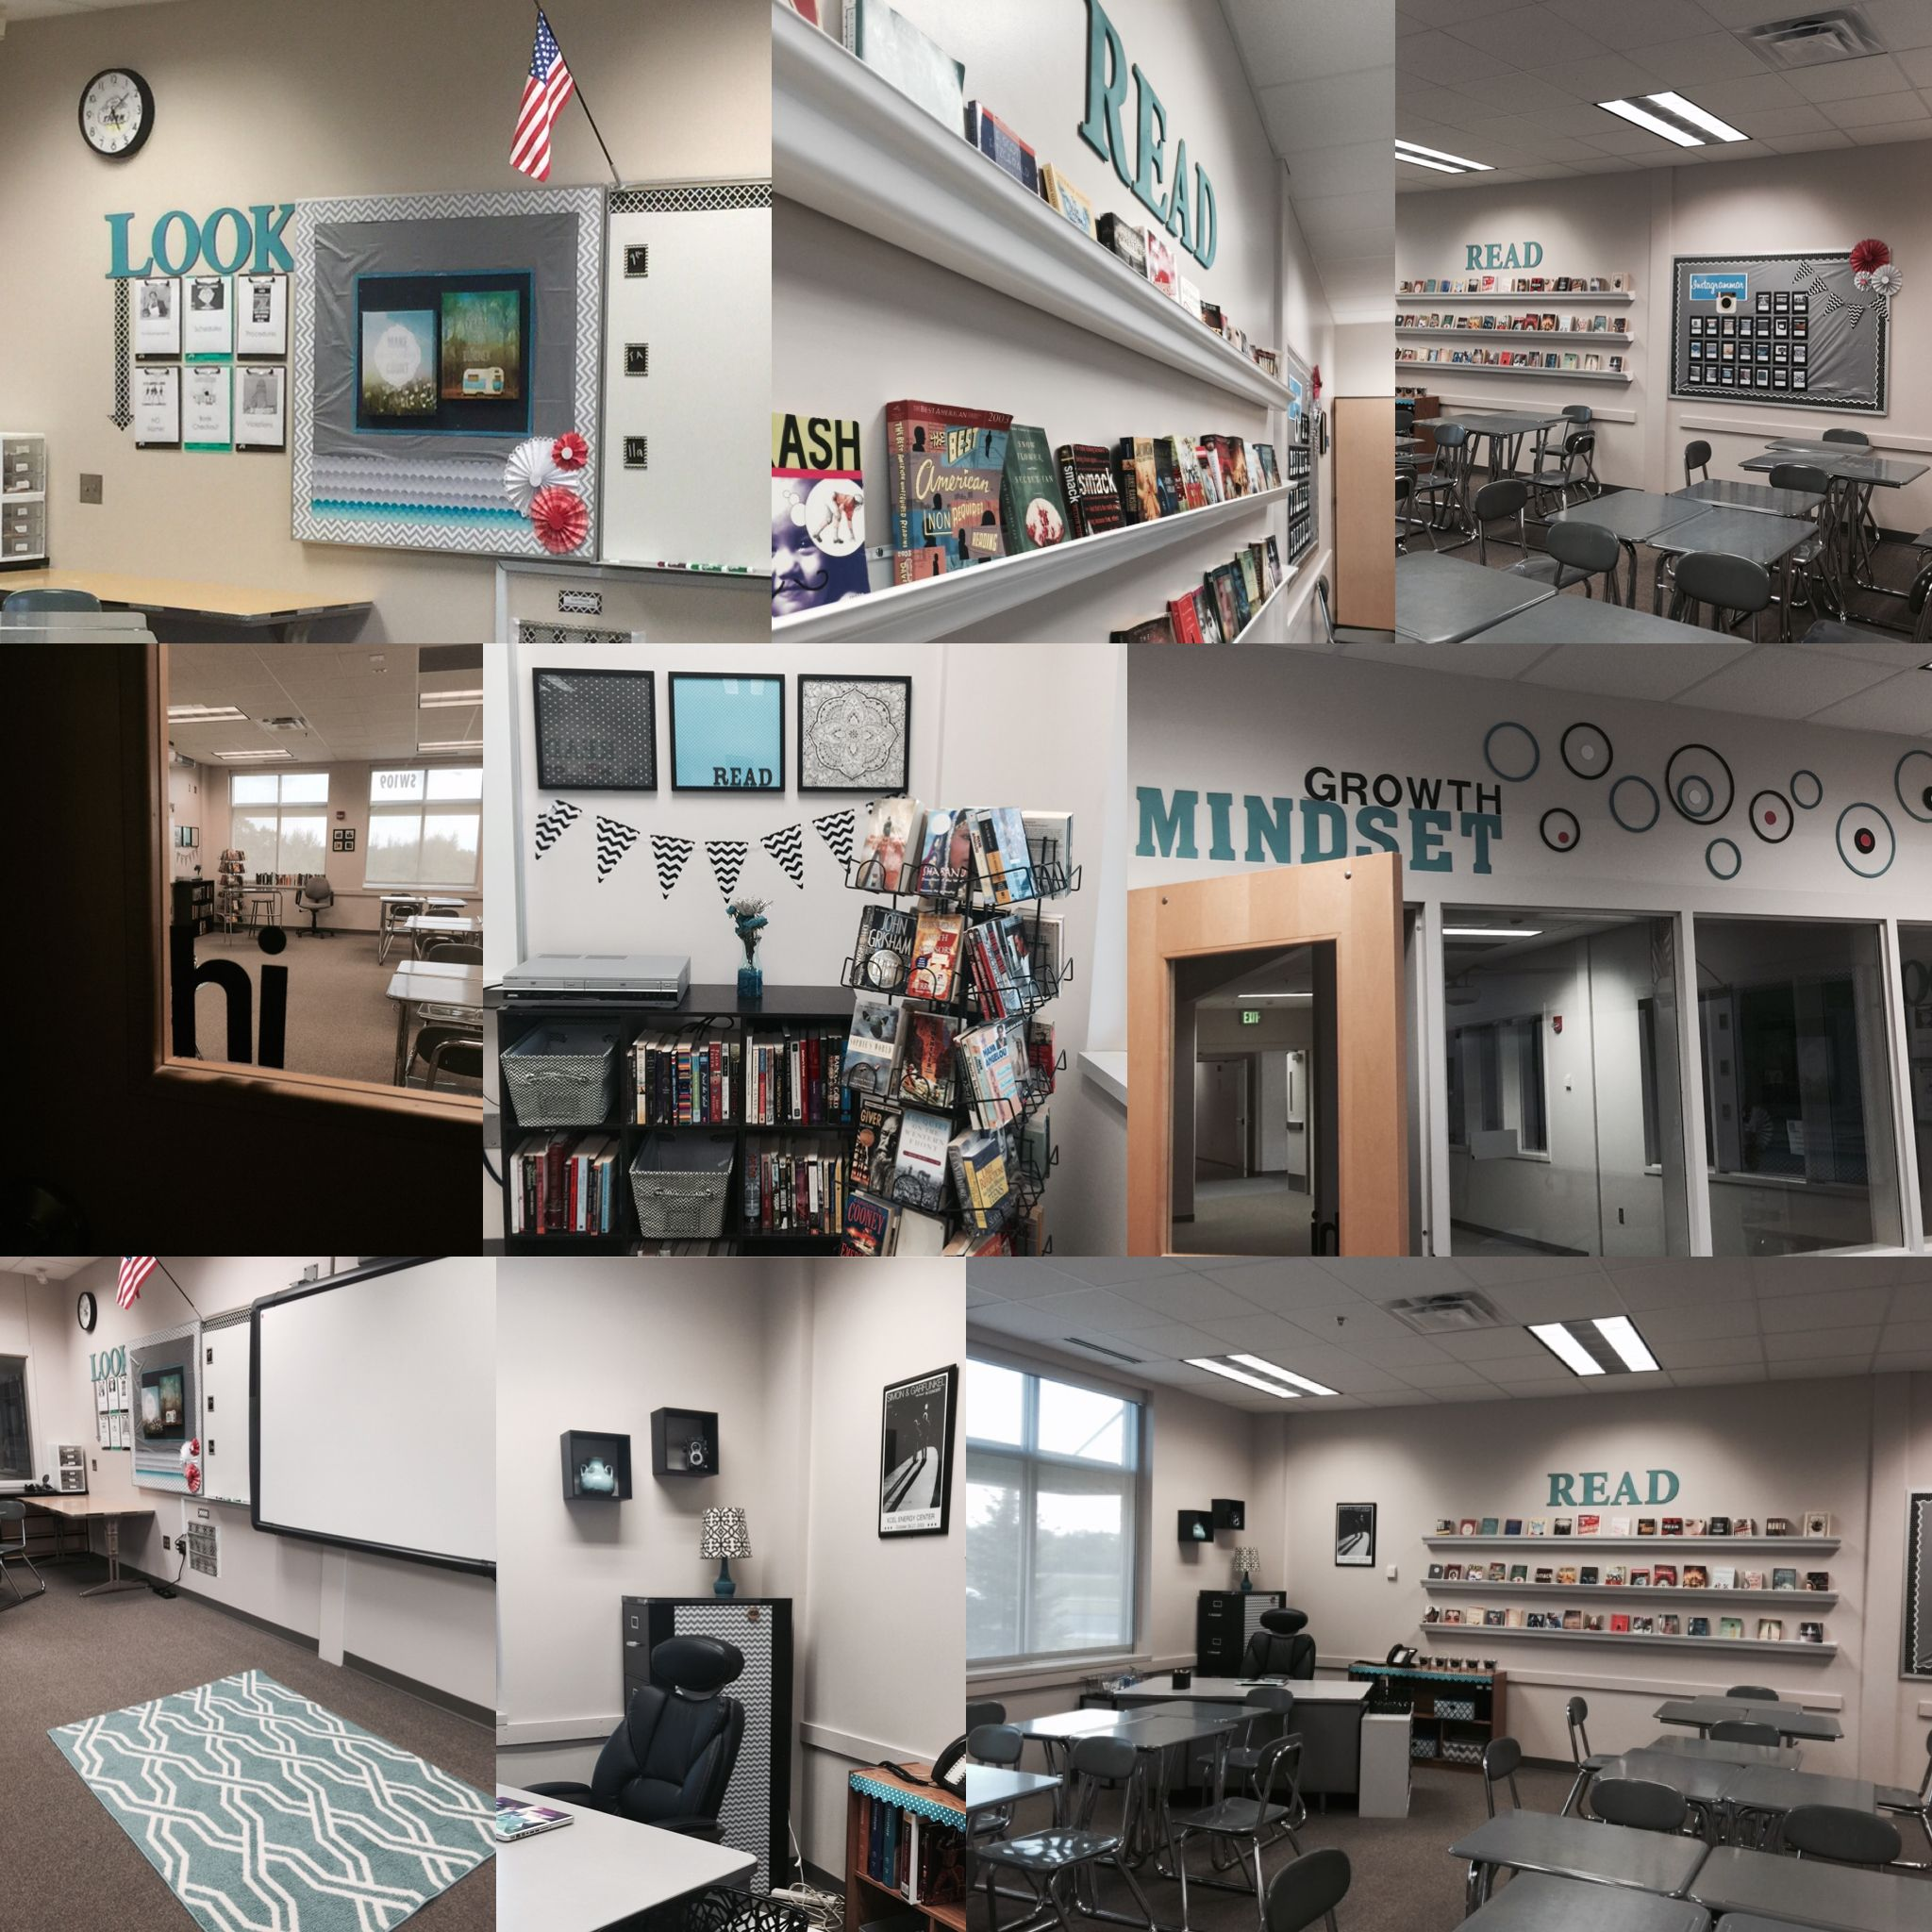 Science Classroom Design Ideas: Yes, A High School Classroom Can Be Inviting. My Language